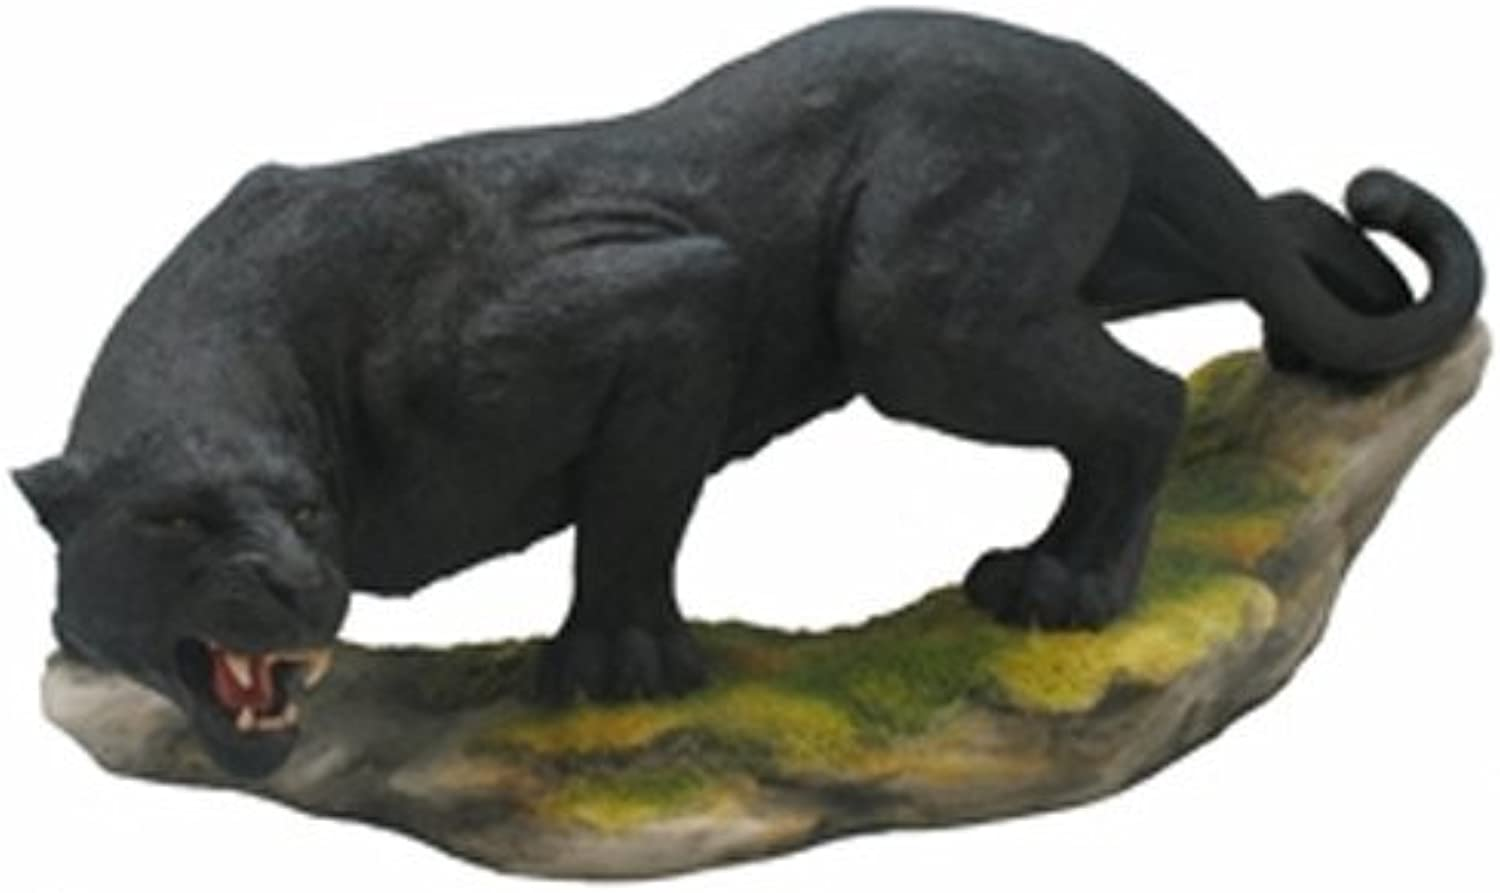 13.25 Inch Prowling Panther Decorative Statue Figurine, Black